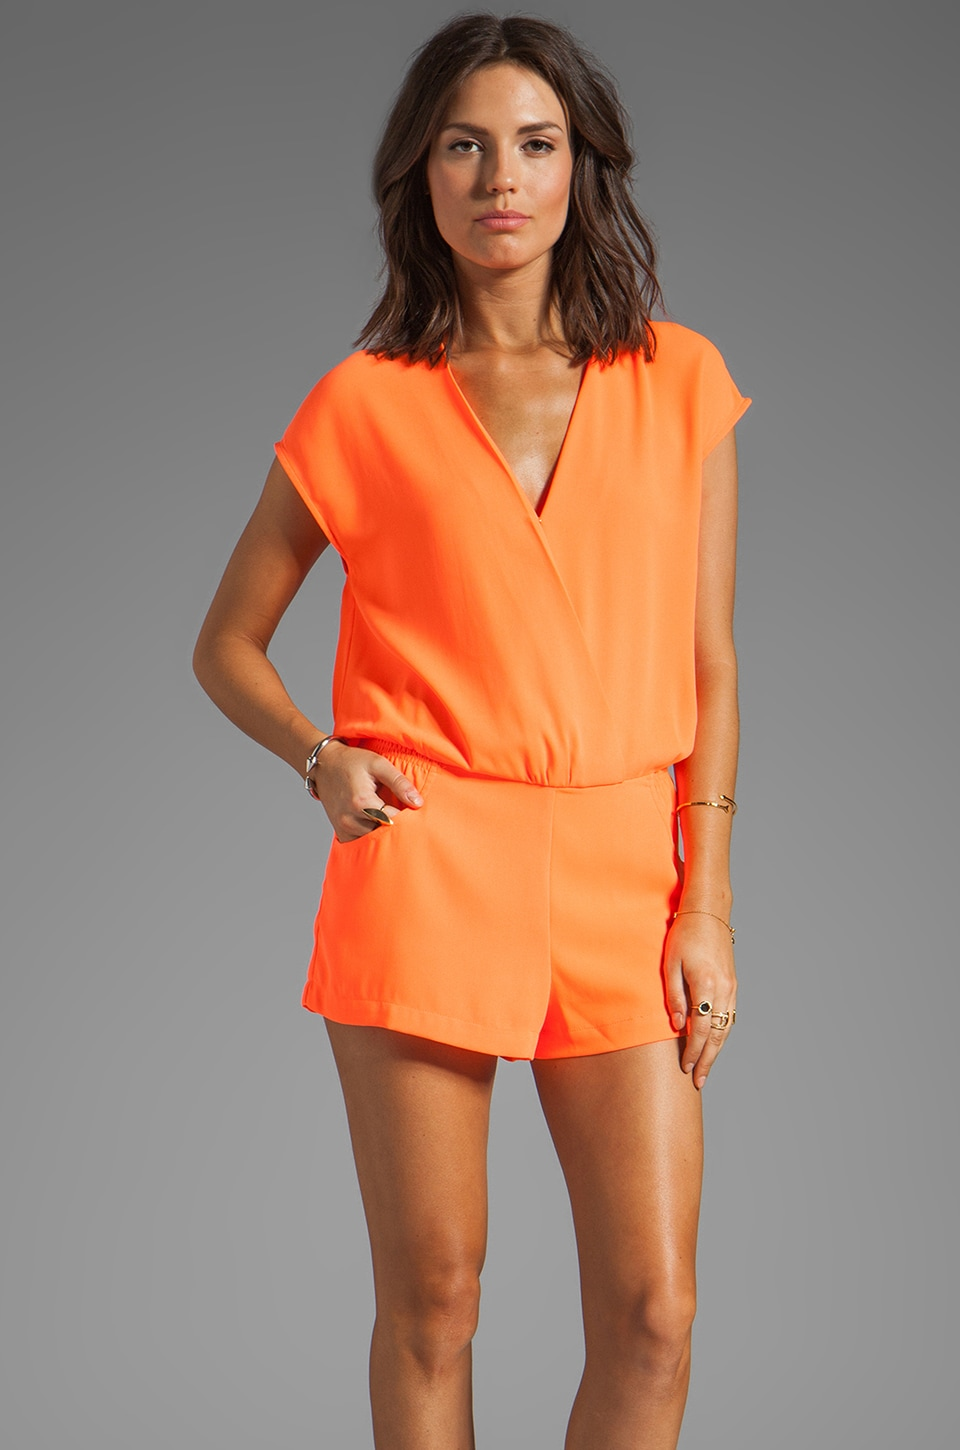 Line & Dot Romper in Fanta Orange